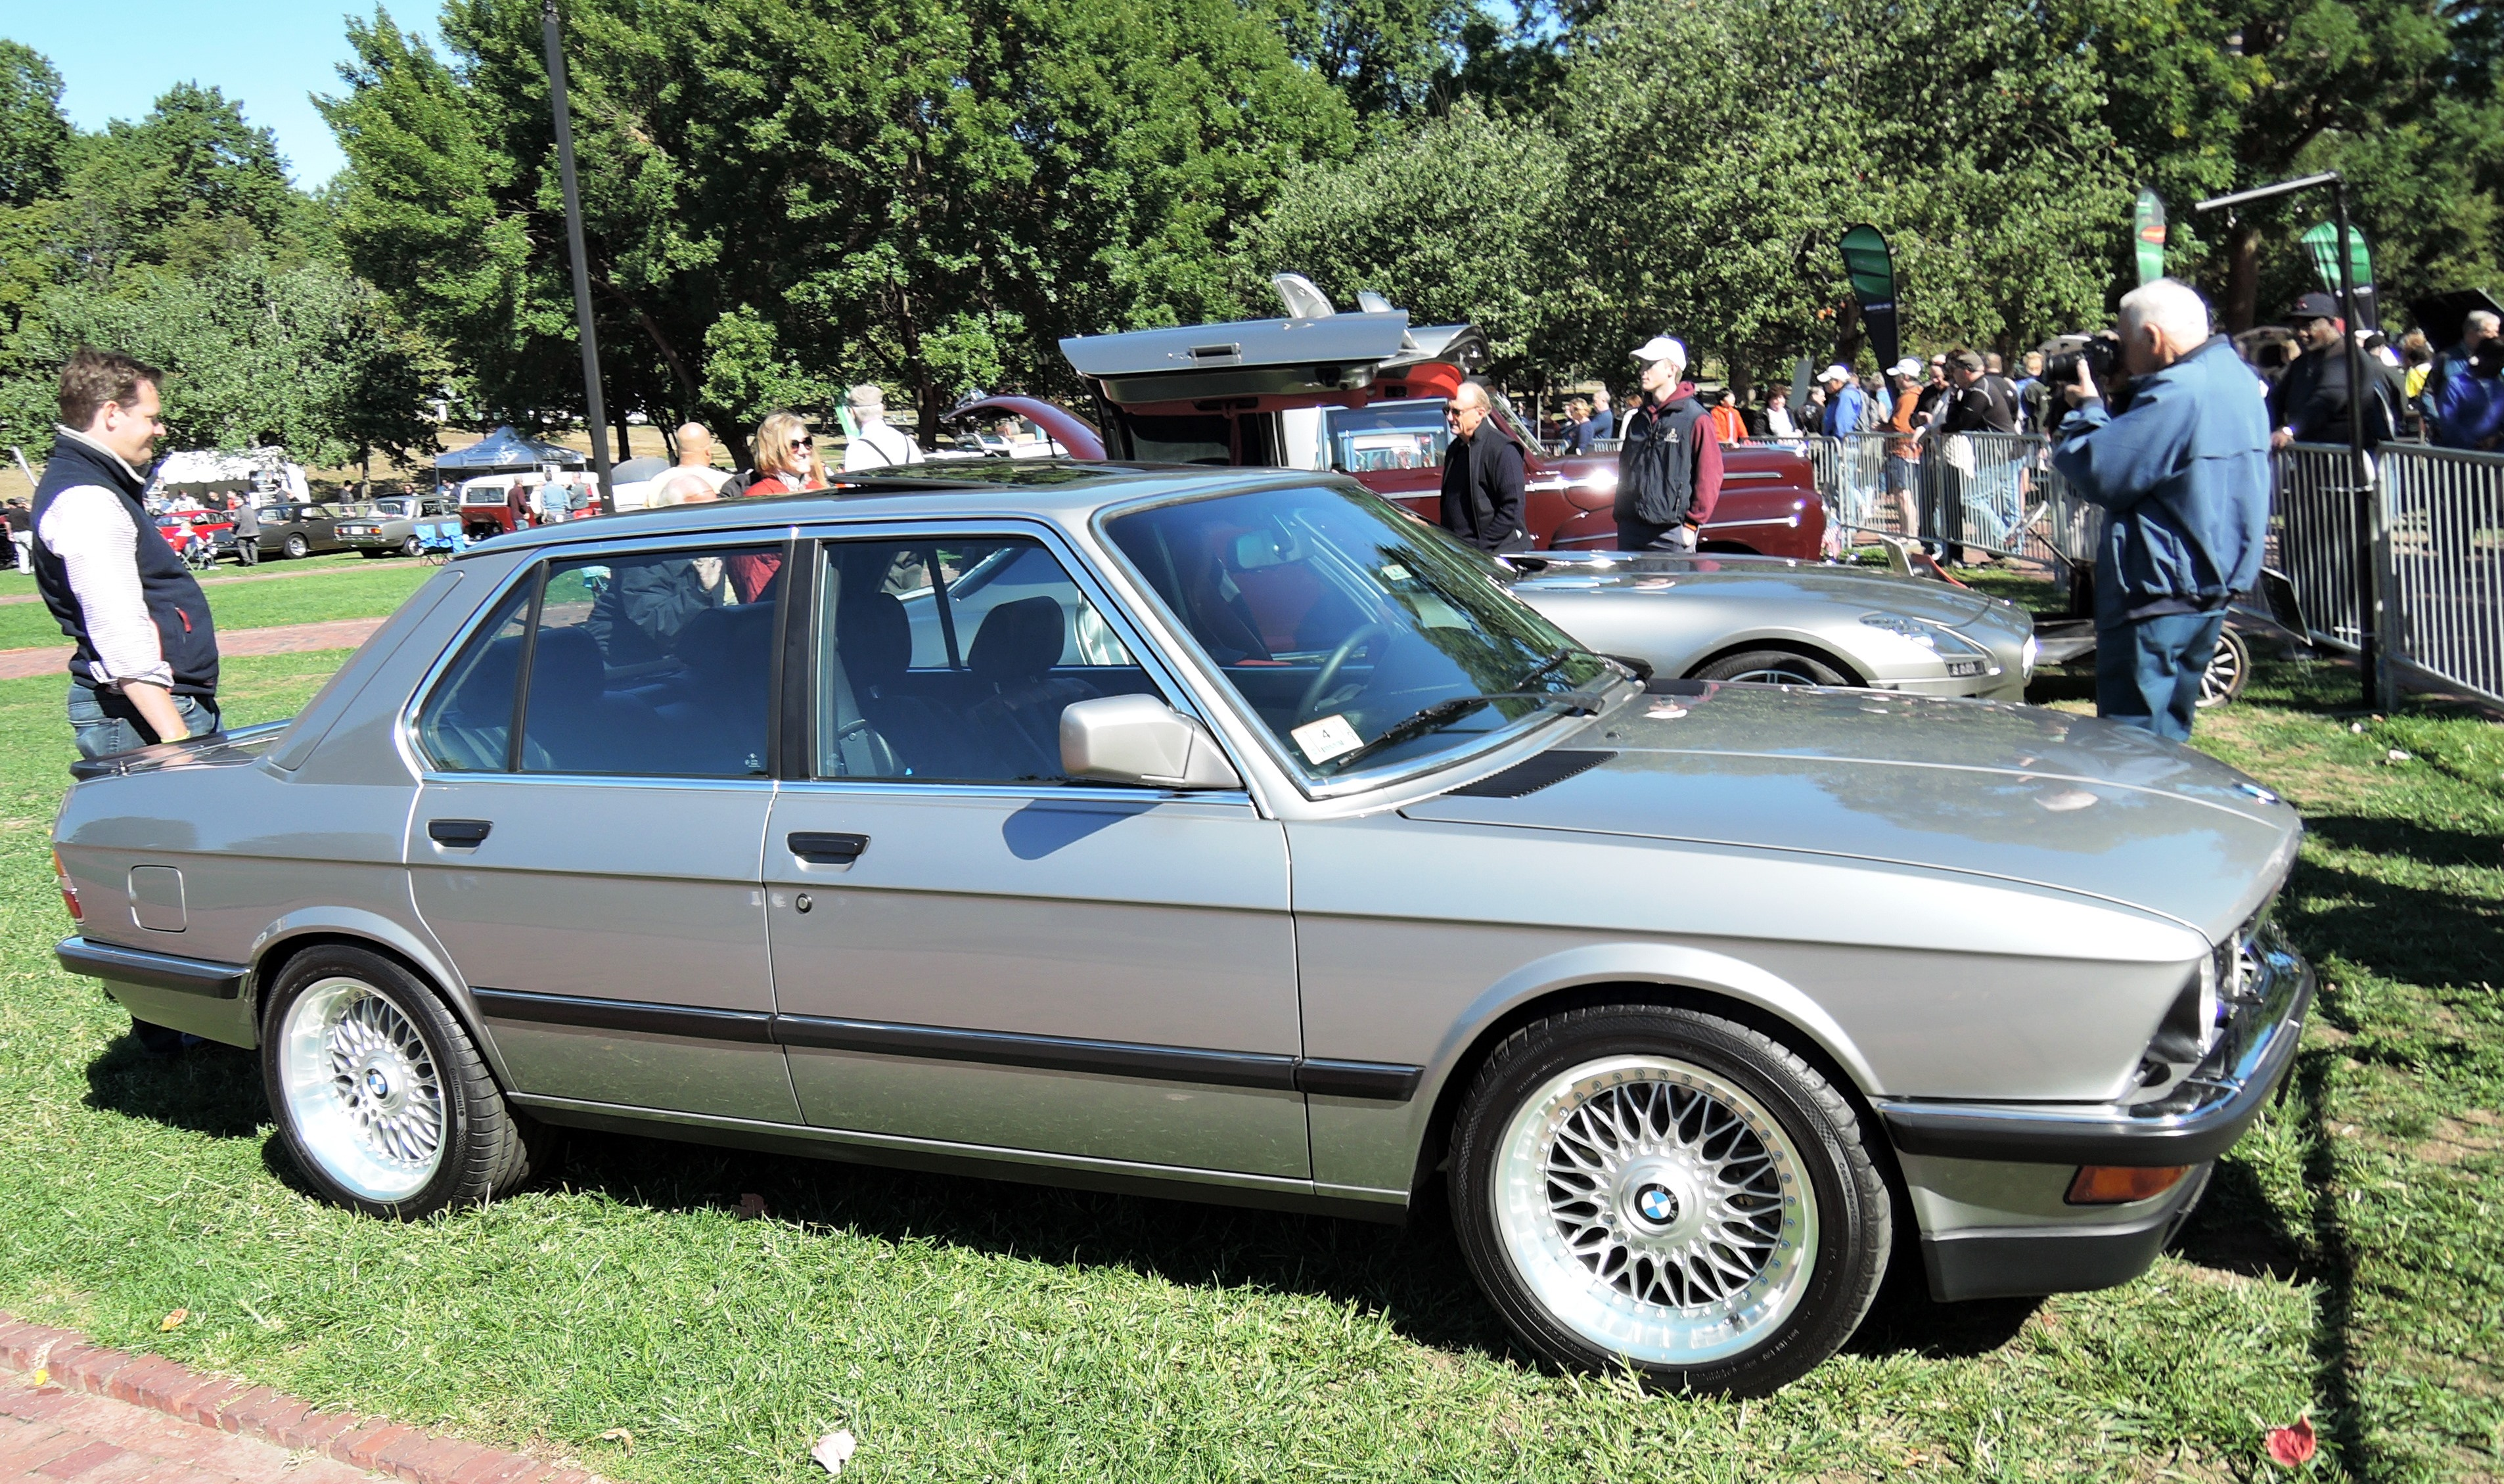 silver 1987 BMW M535i - The Boston Cup on Boston Common